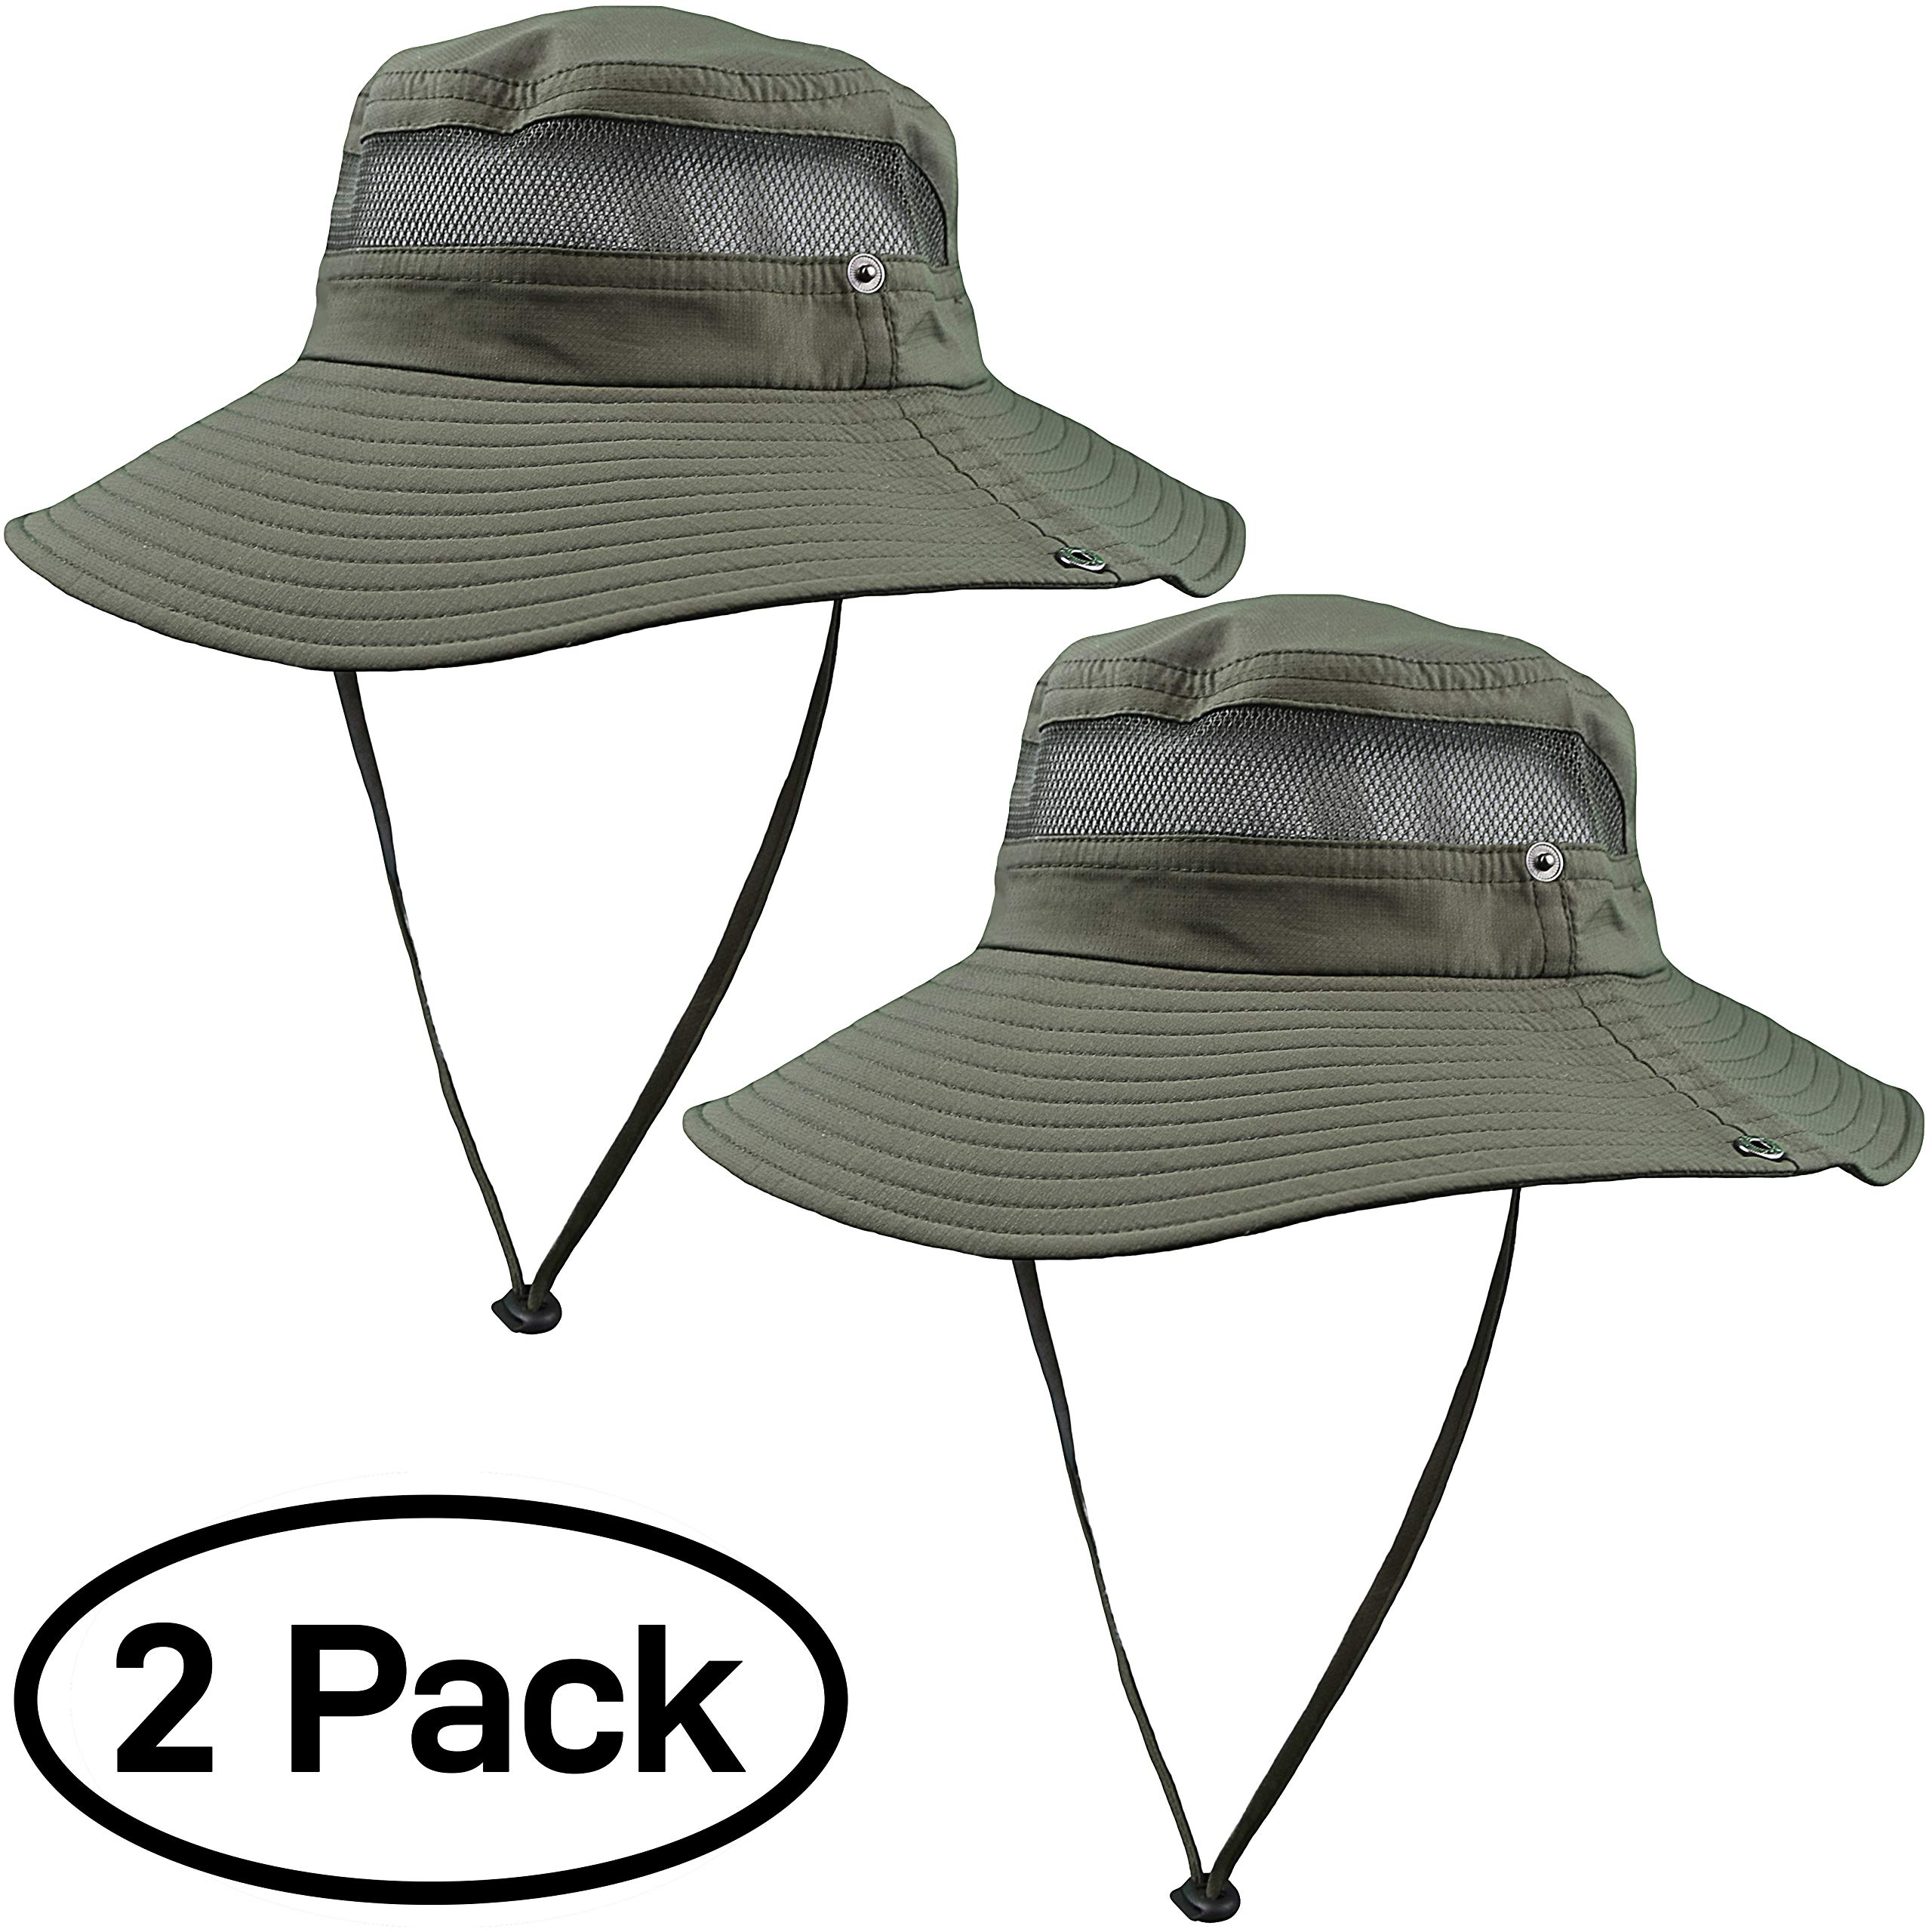 GearTOP Fishing Hat and Safari Cap with Sun Protection | Premium Hats for Men and Women (Army Green - 2 Pack) by GearTOP (Image #7)